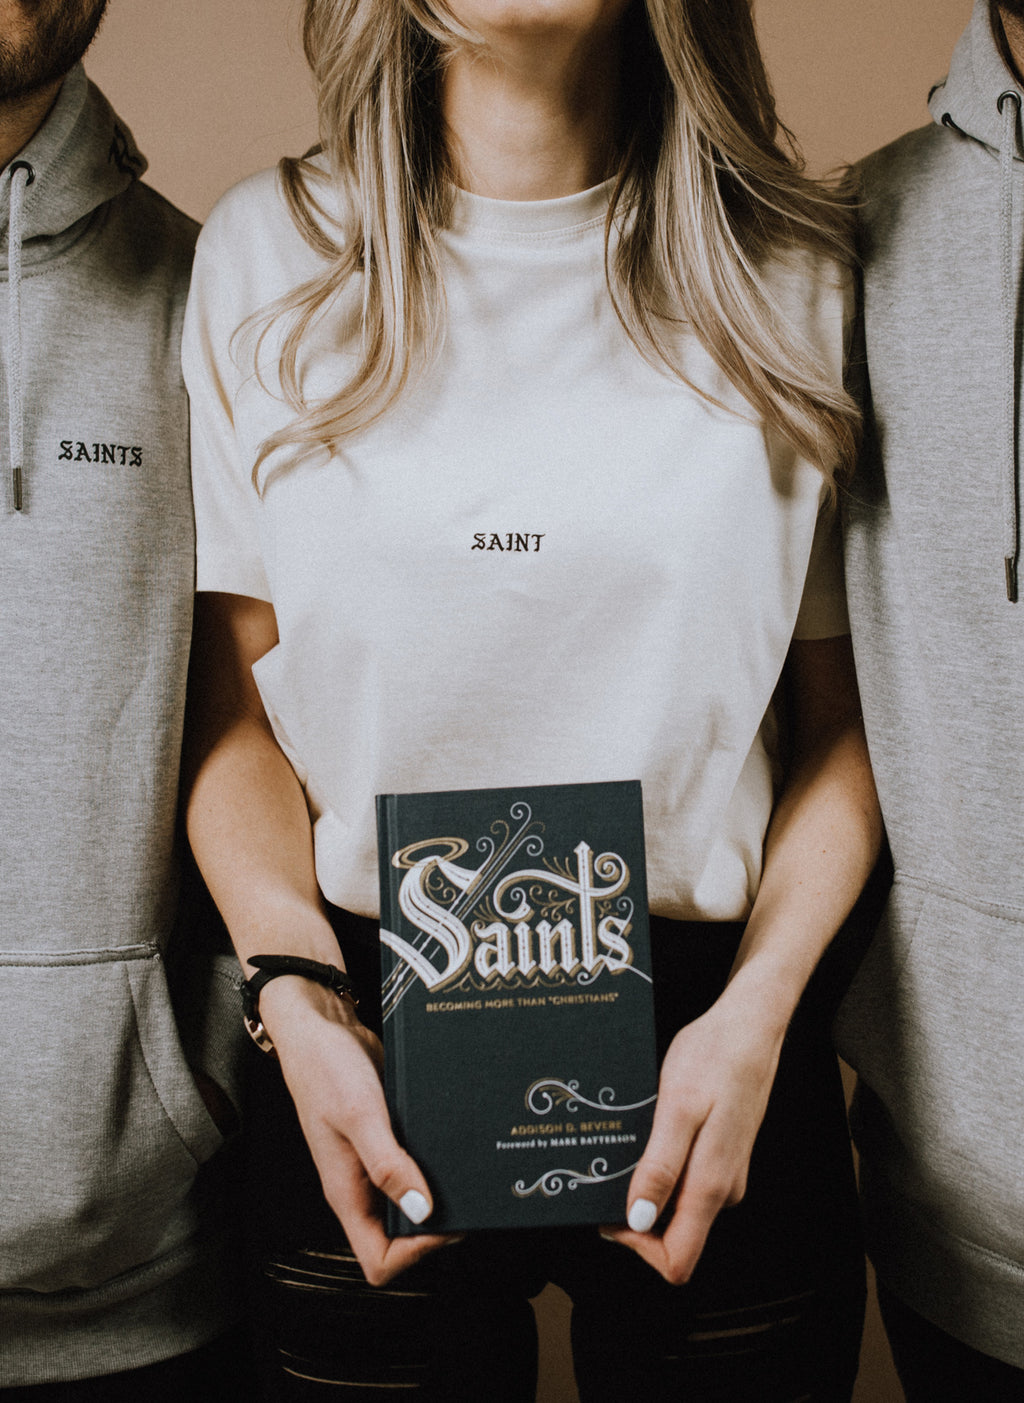 Saints Book and T-shirt